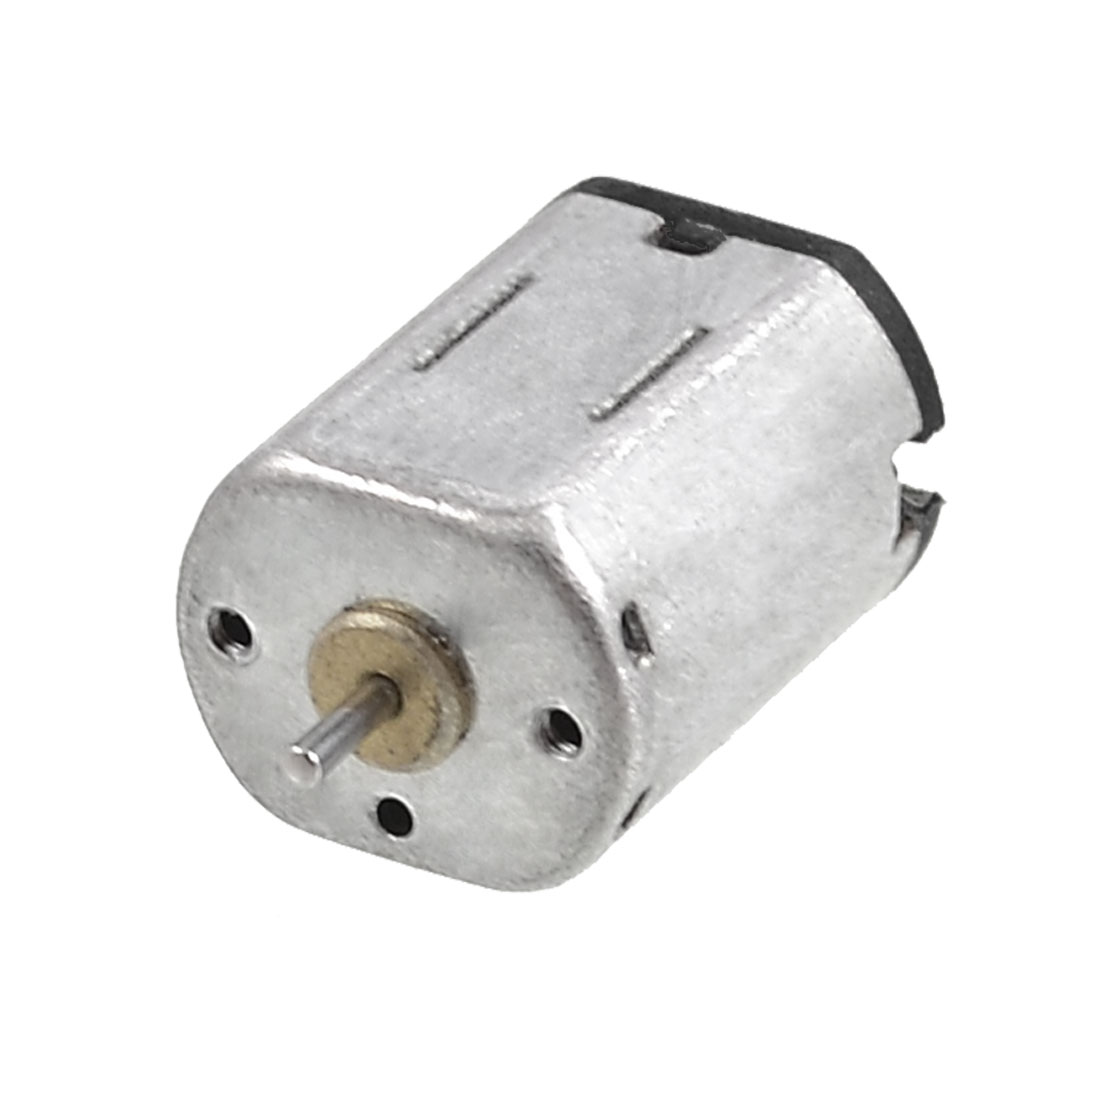 DC-4-5V-0-34A-18000RPM-Output-Speed-Mini-Motor-11g-cm-for-Massage-Device